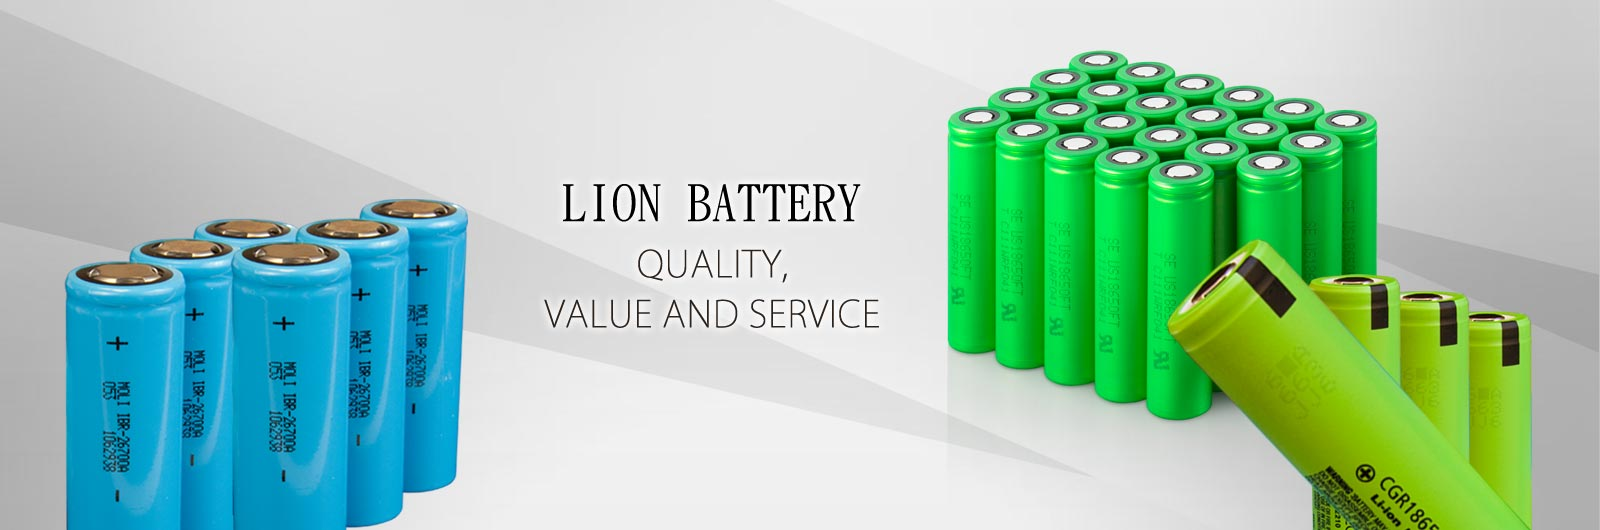 Lion Battery Manufacturers